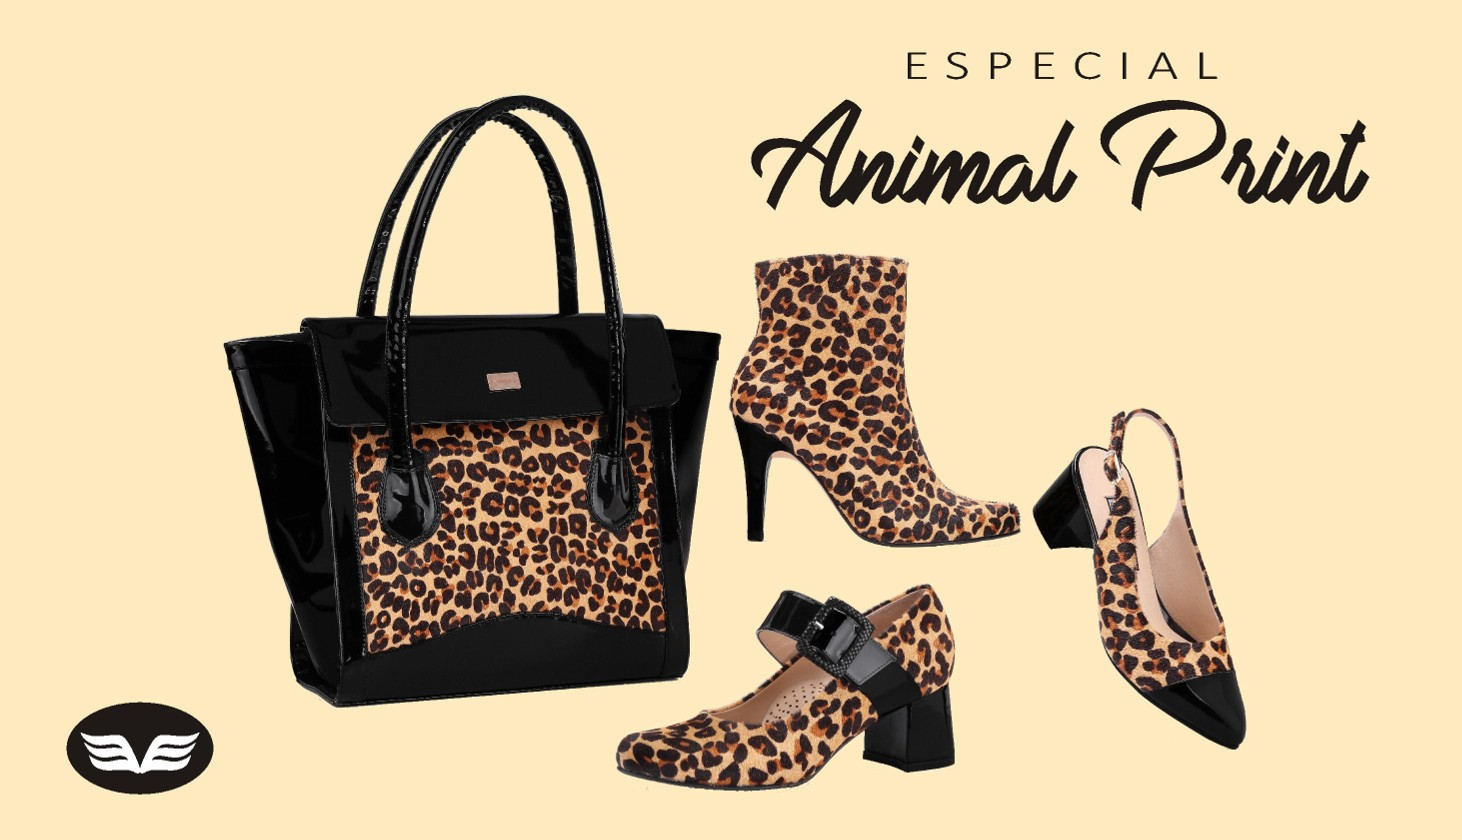 Bodegón Animal Print